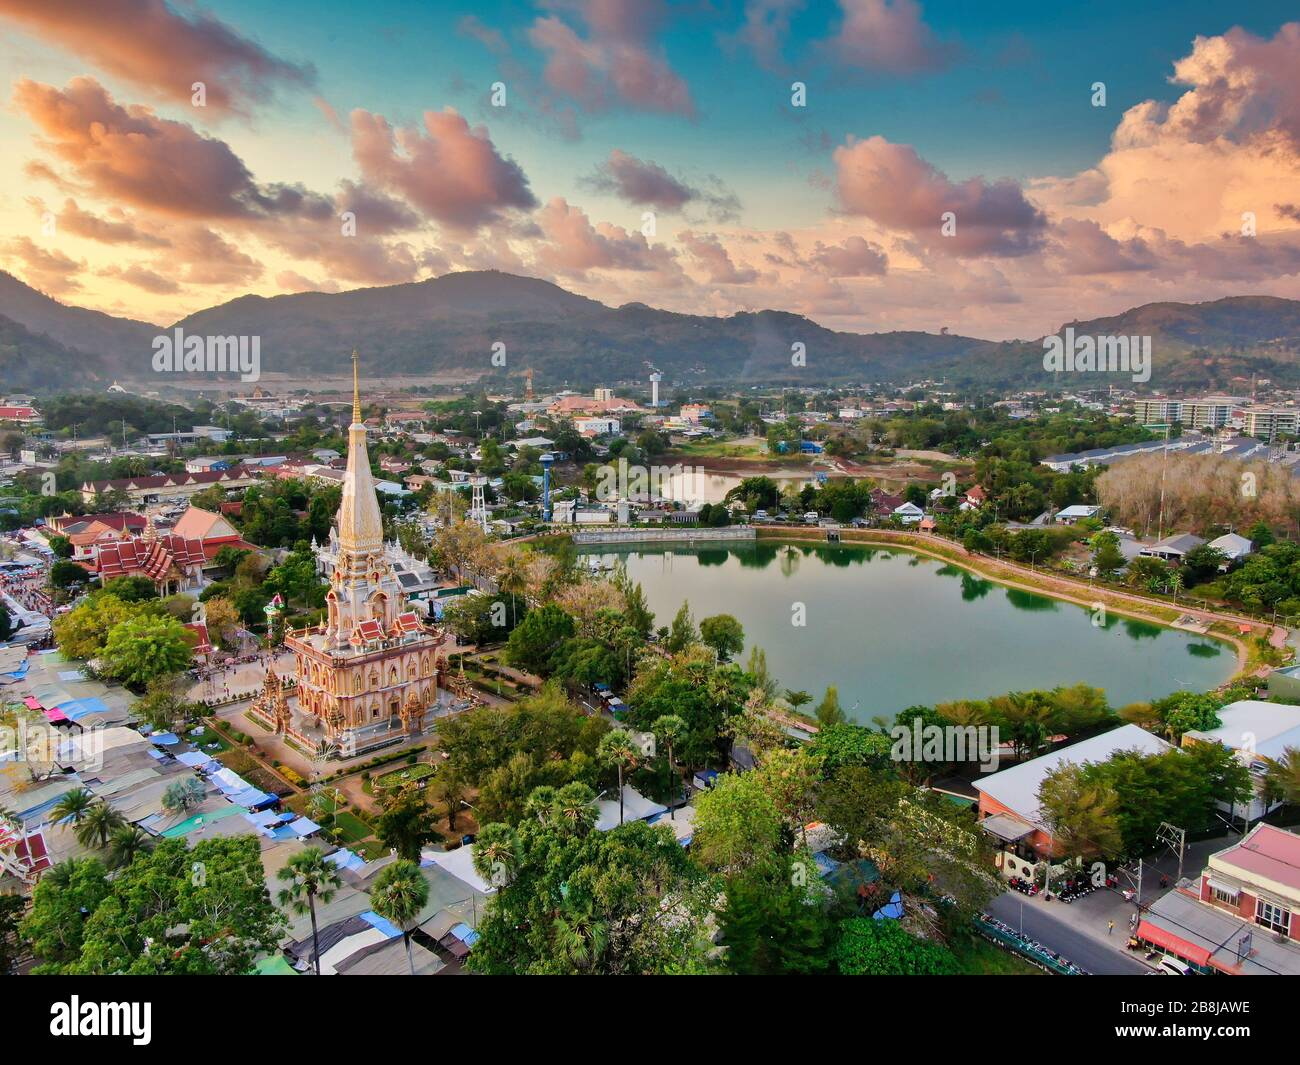 Aerial View With Drone. Wat Chalong or Chalong Temple in Pagoda Phuket Thailand. Public place. Drone Photo. Stock Photo